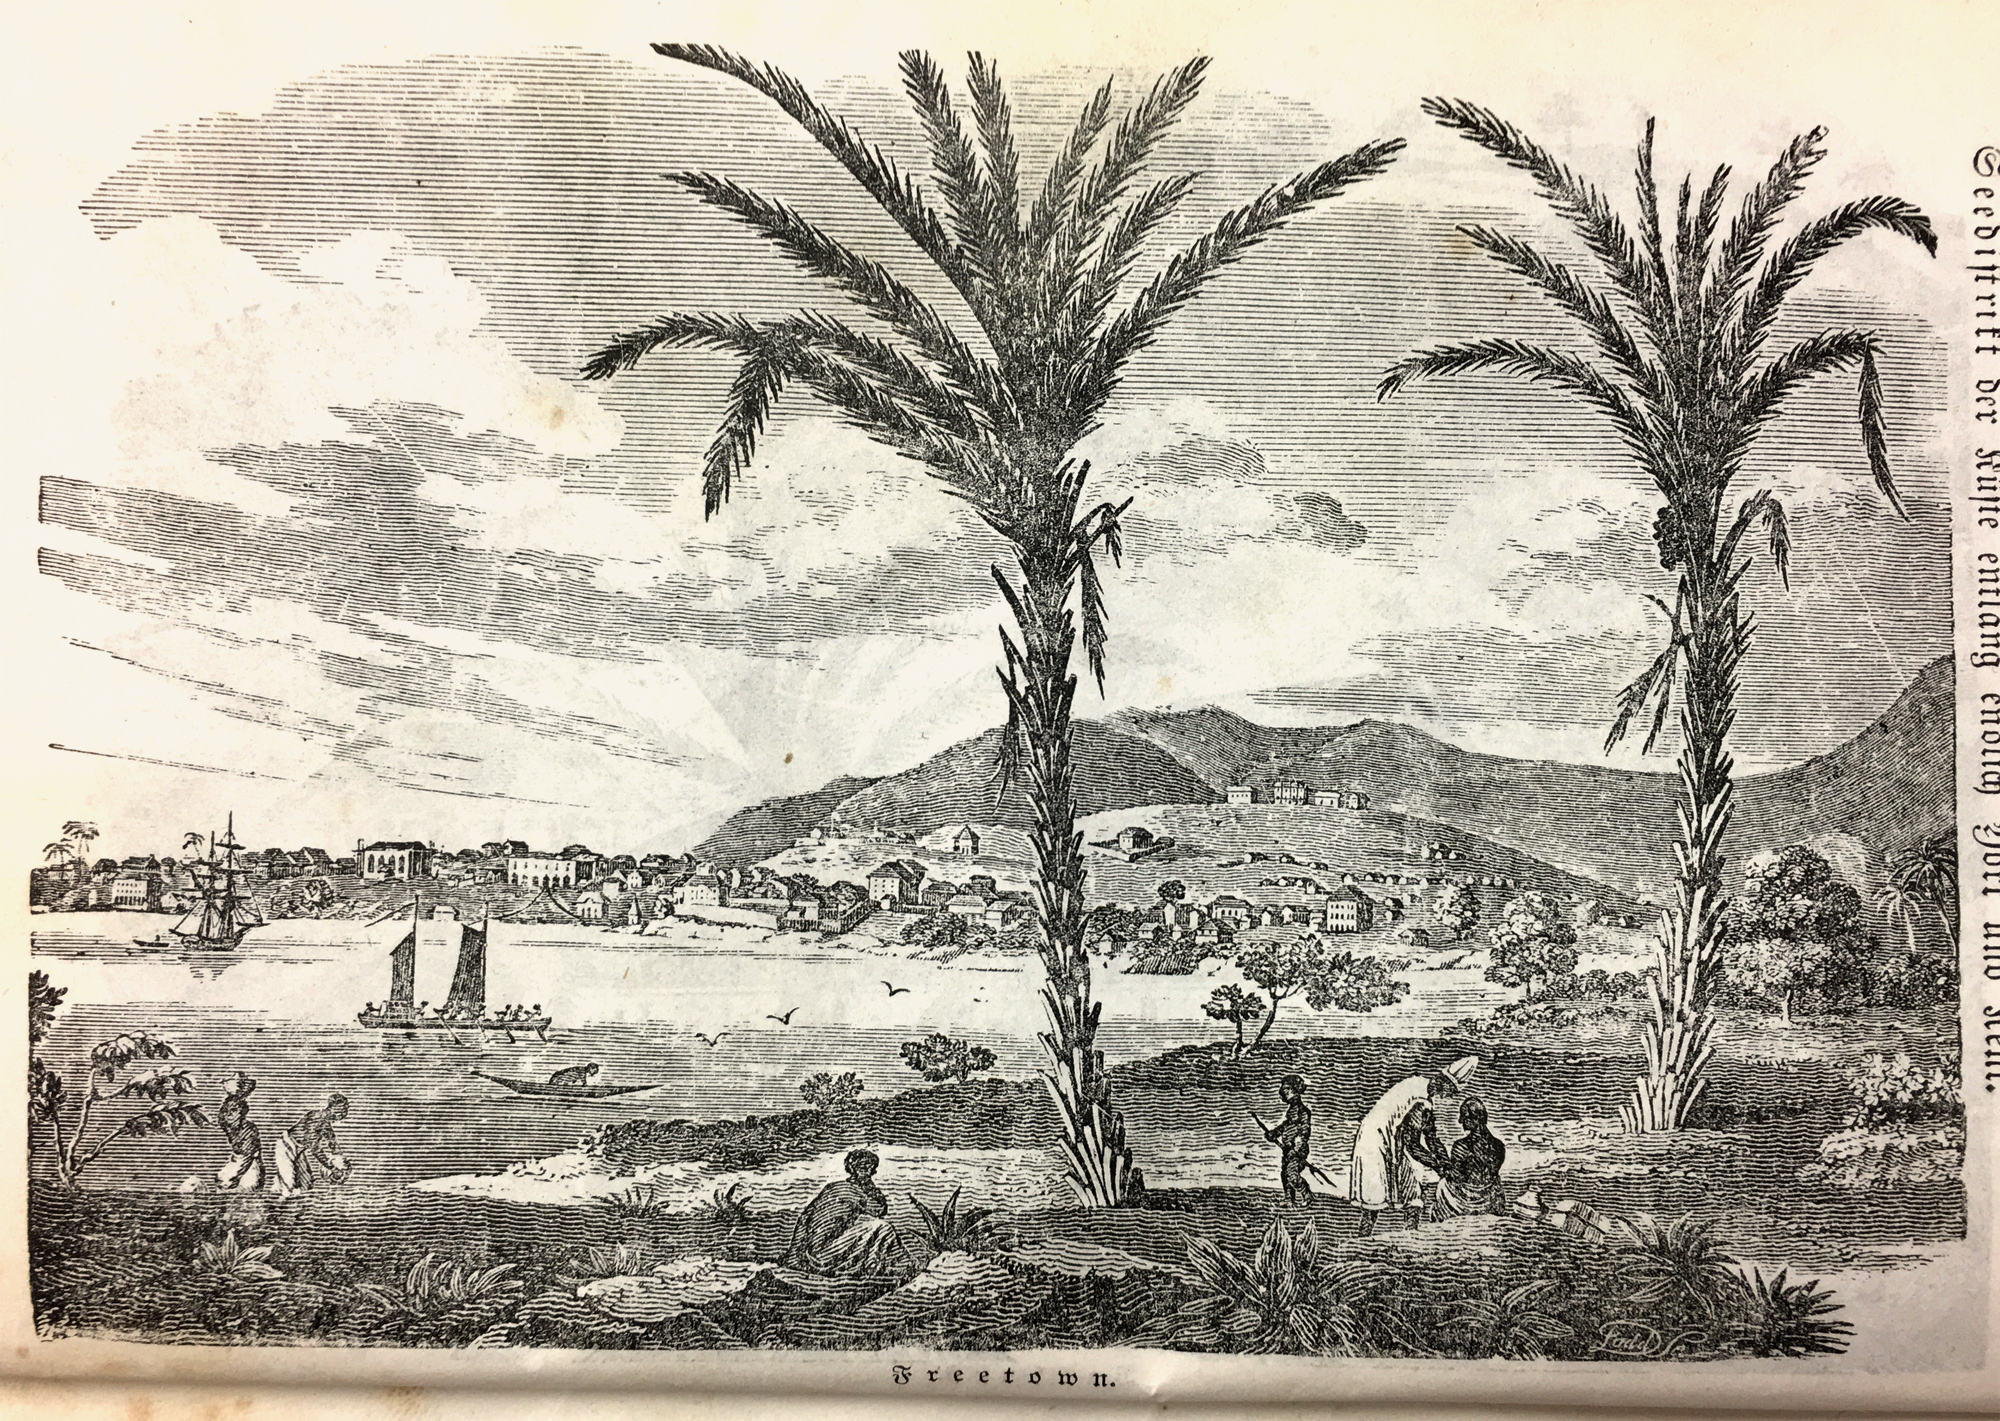 Freetown in Sierra Leone became a safe haven for the liberated slaves, many of them came from Yorùbáland.